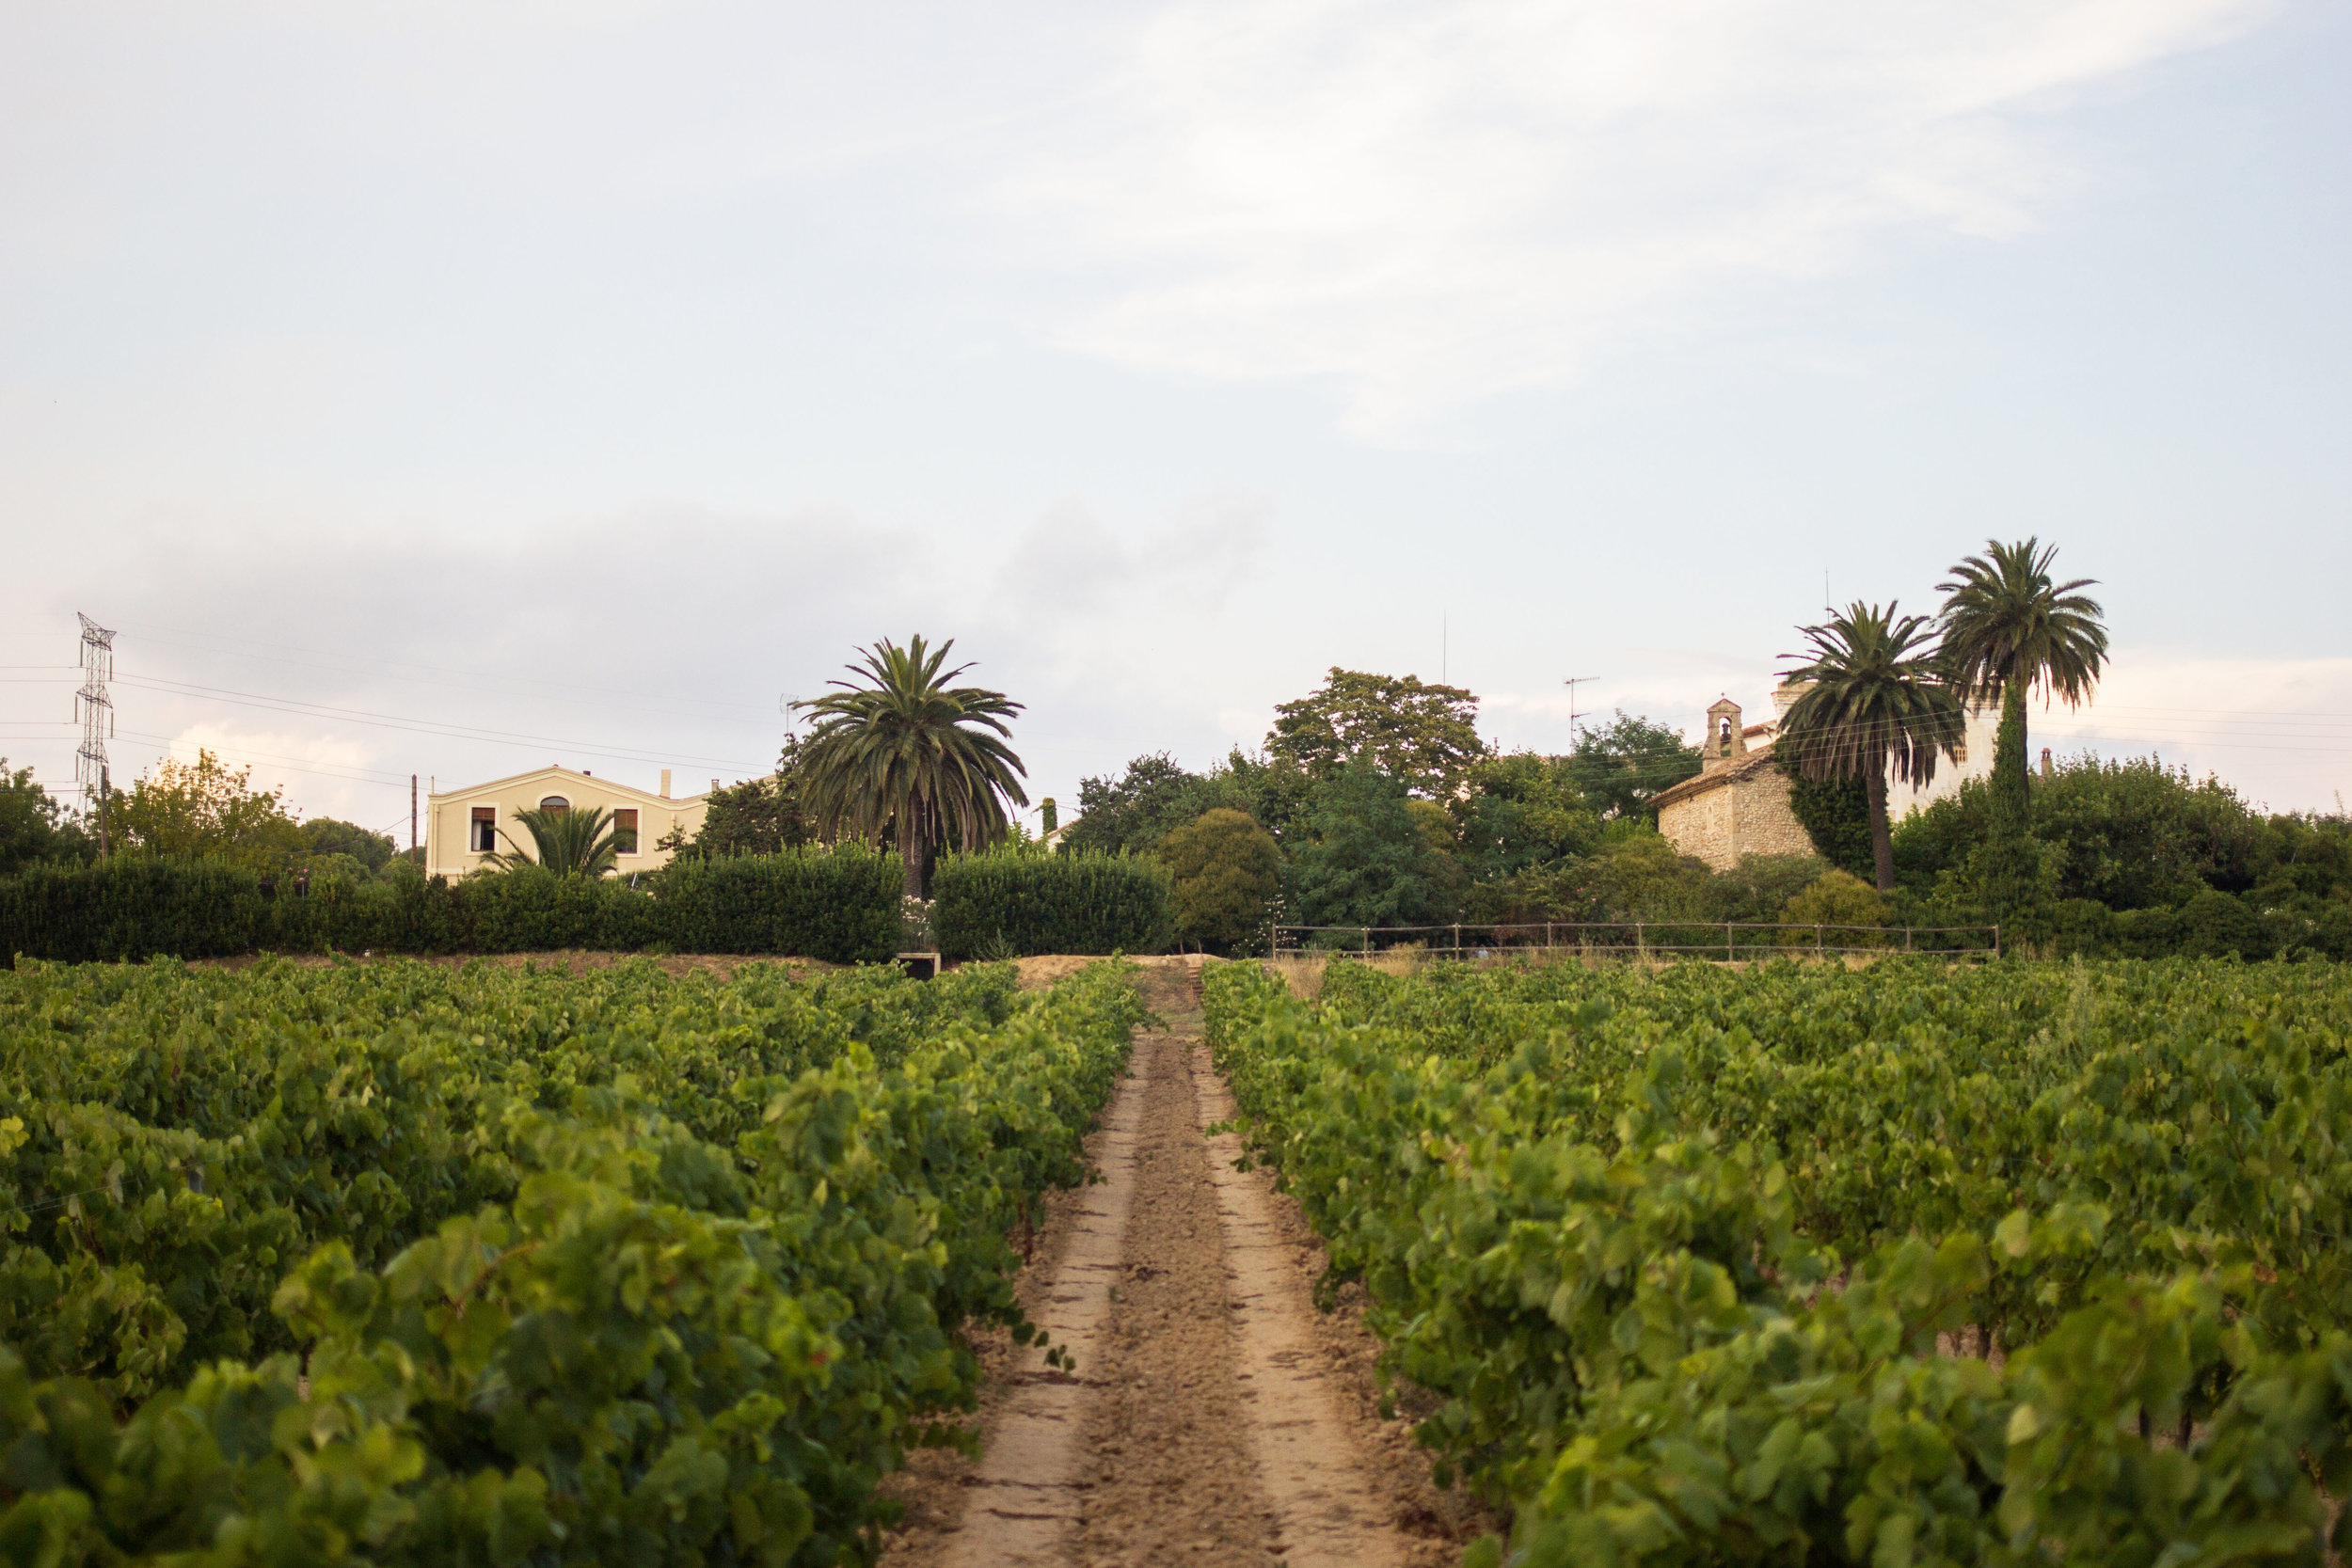 A dirt road through the vineyard leading up to Mas Palou